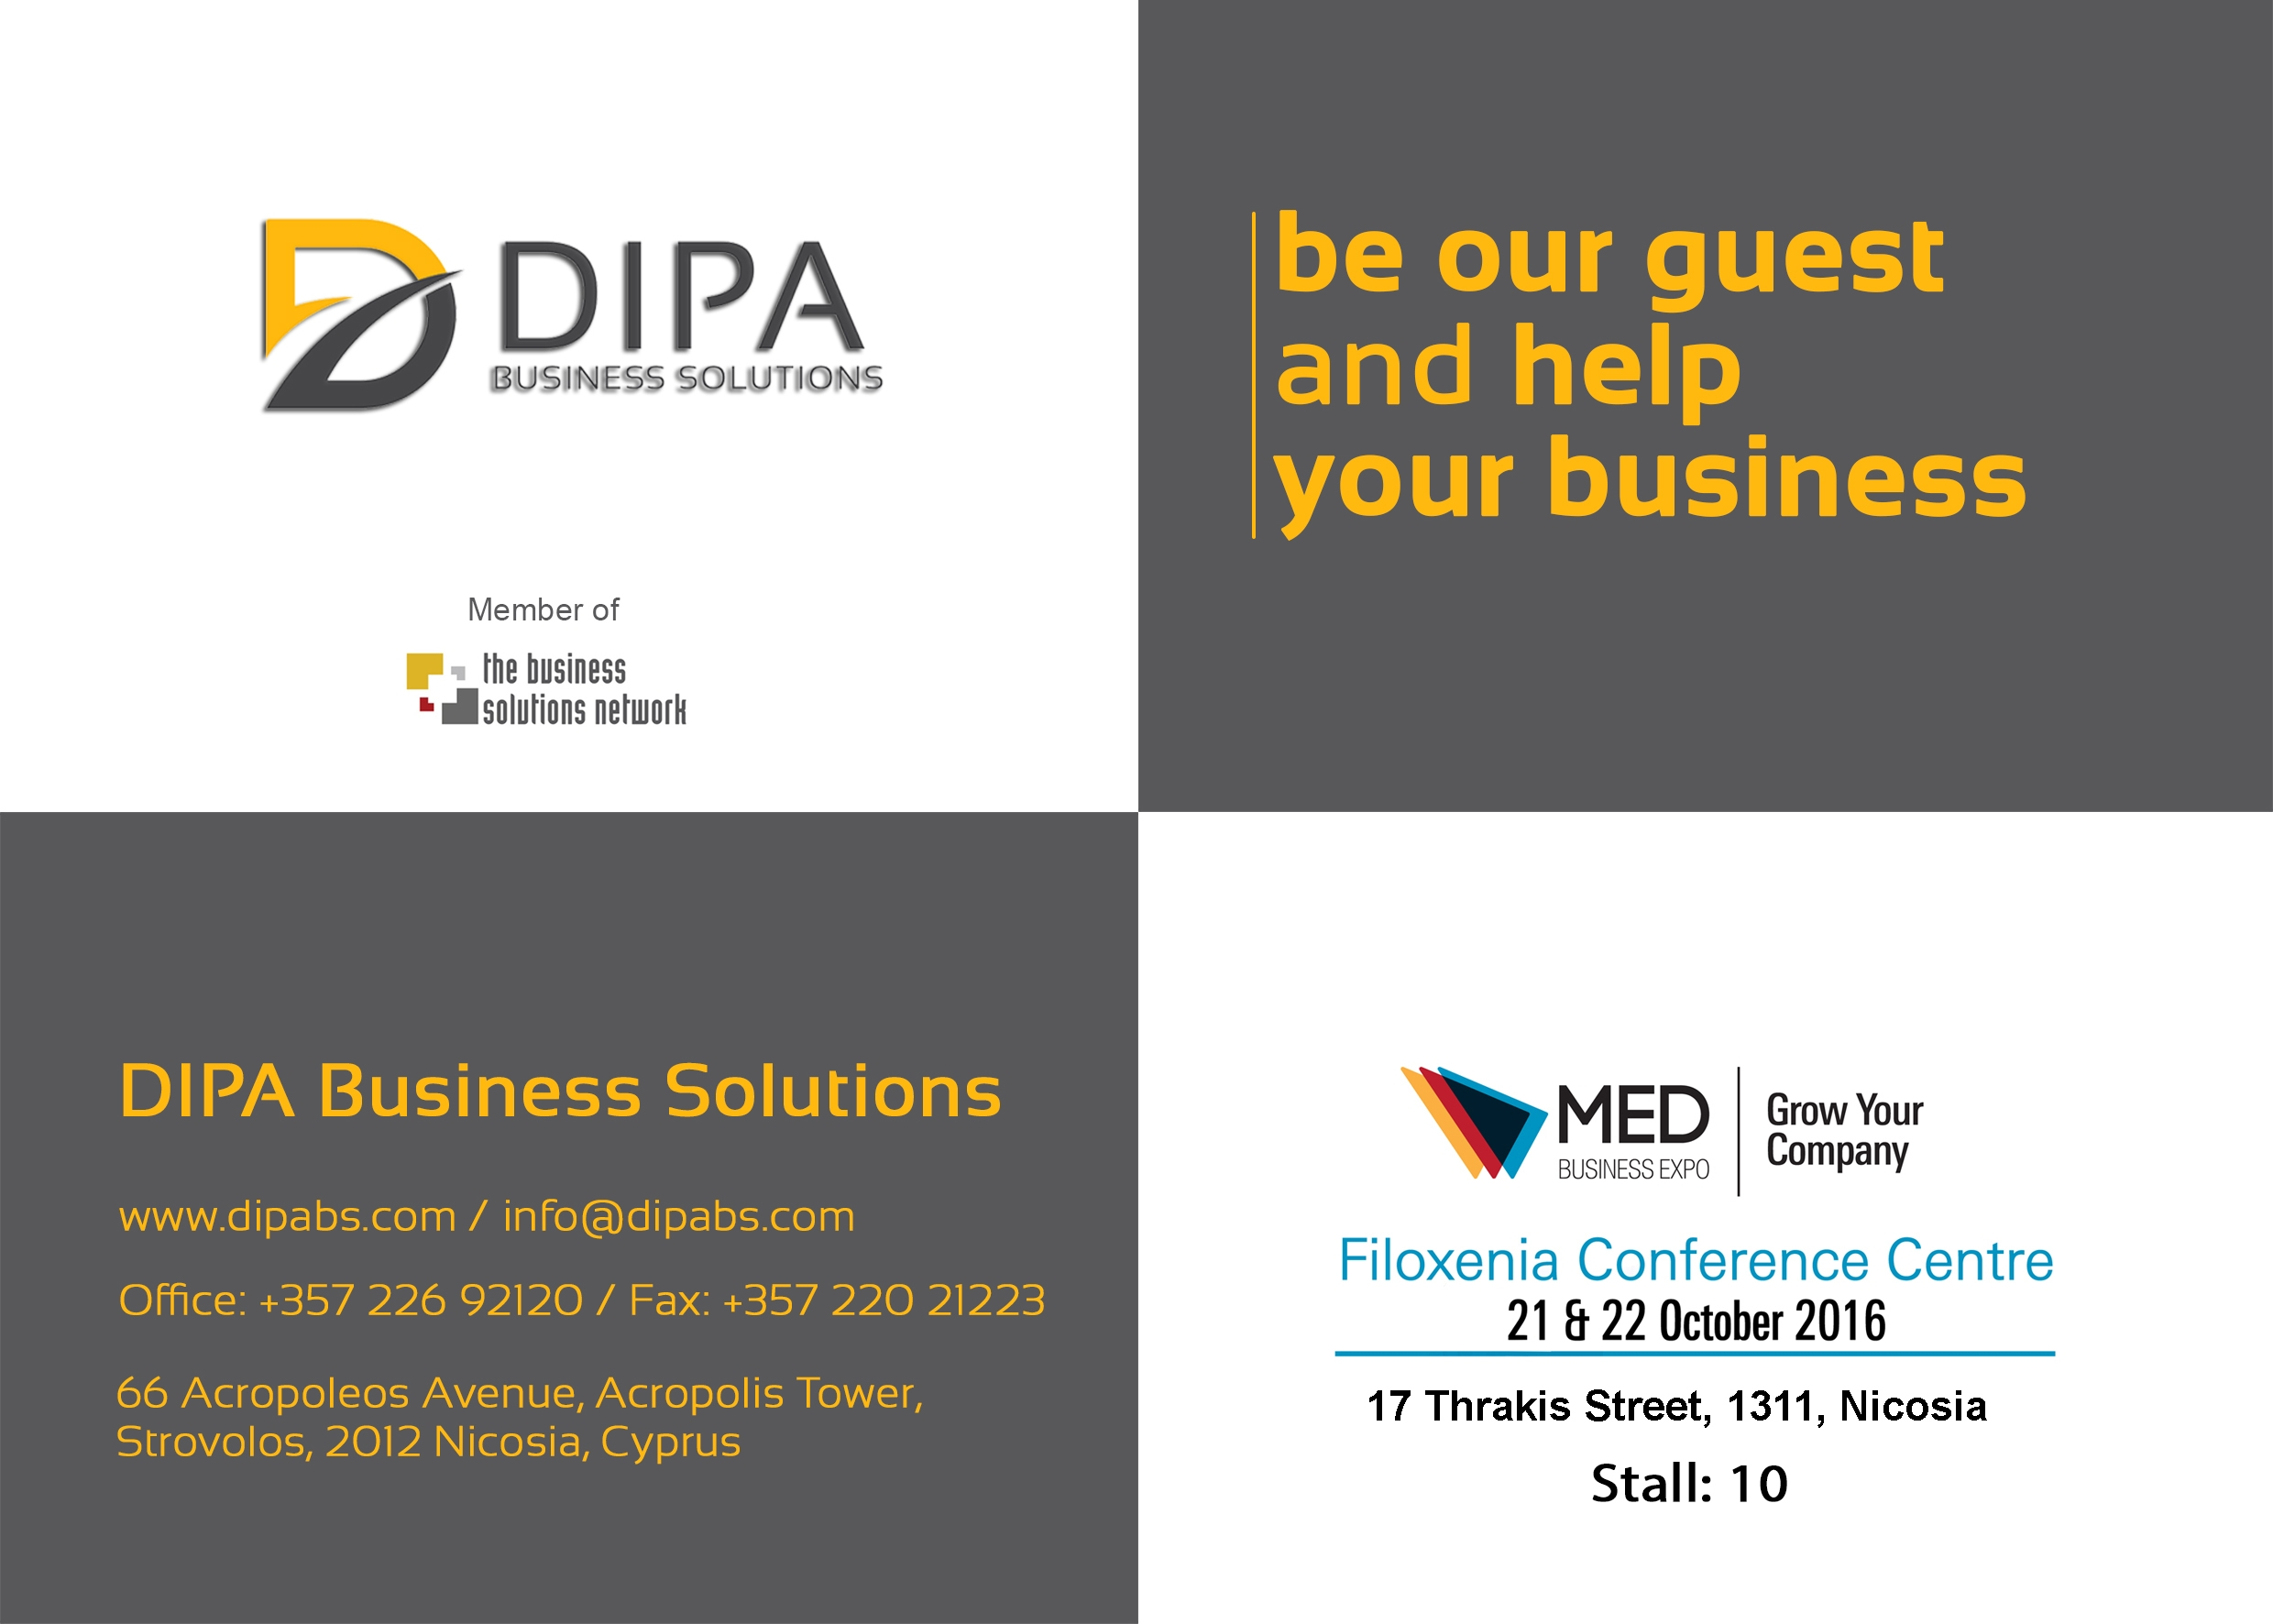 Dipa business solutions participating on med business expo 2016 dipa business solutions ltd has the pleasure to invite you to attend the pioneering international exhibition conference med business expo stopboris Gallery